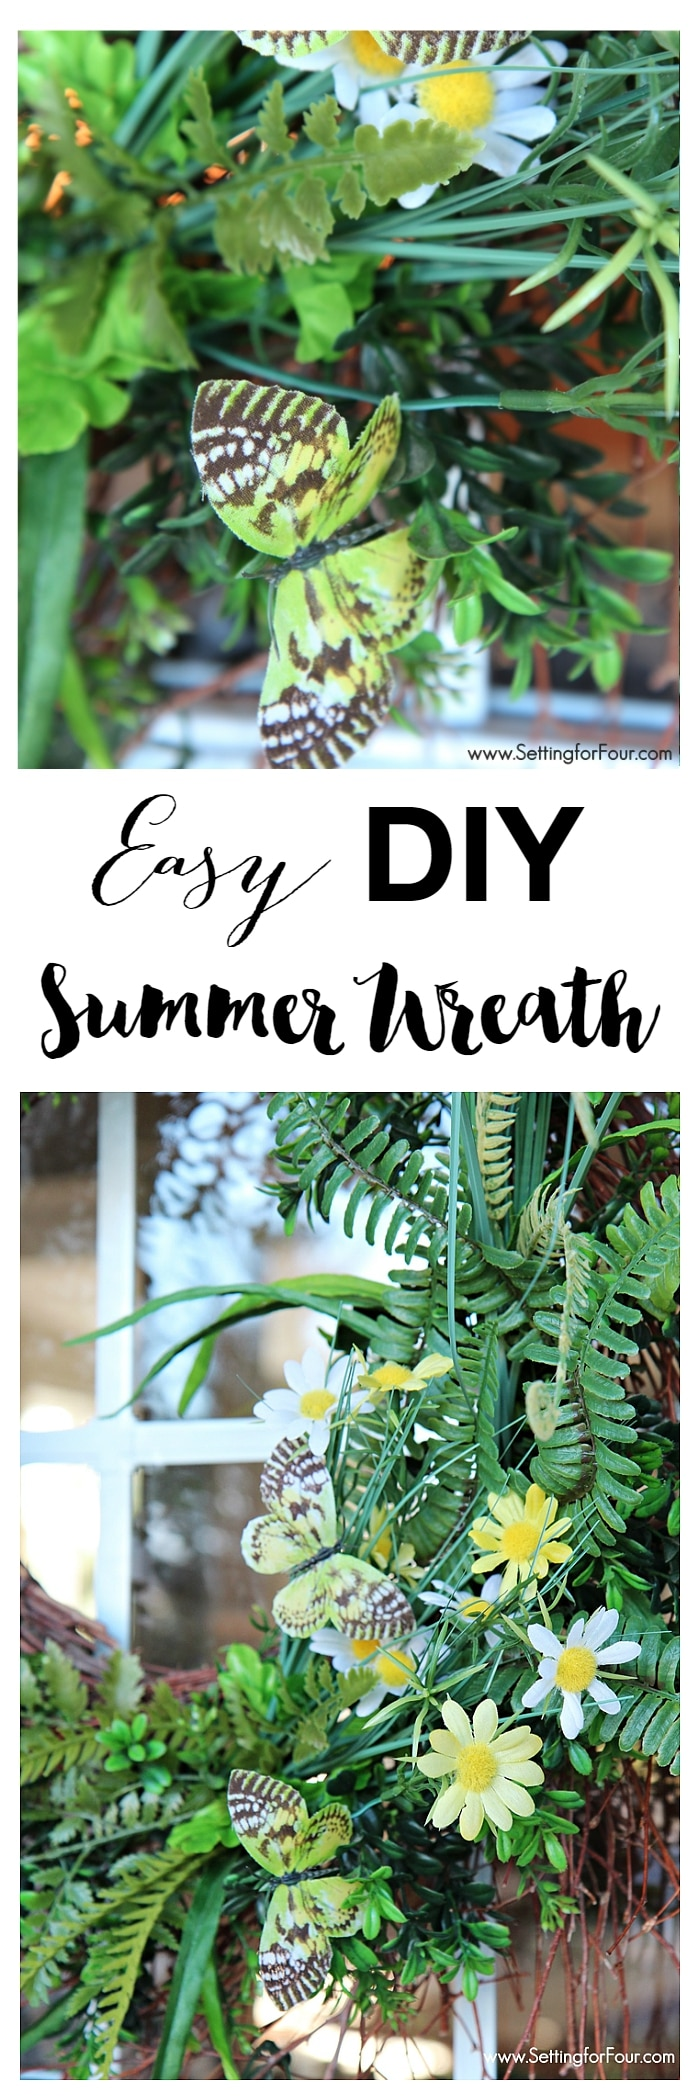 Decorate your front door with this quick and easy charming summer wreath DIY.  Covered with classic summer icons: butterflies, ferns and boxwood. A great way to add instant curb appeal to your home! www.settingforfour.com